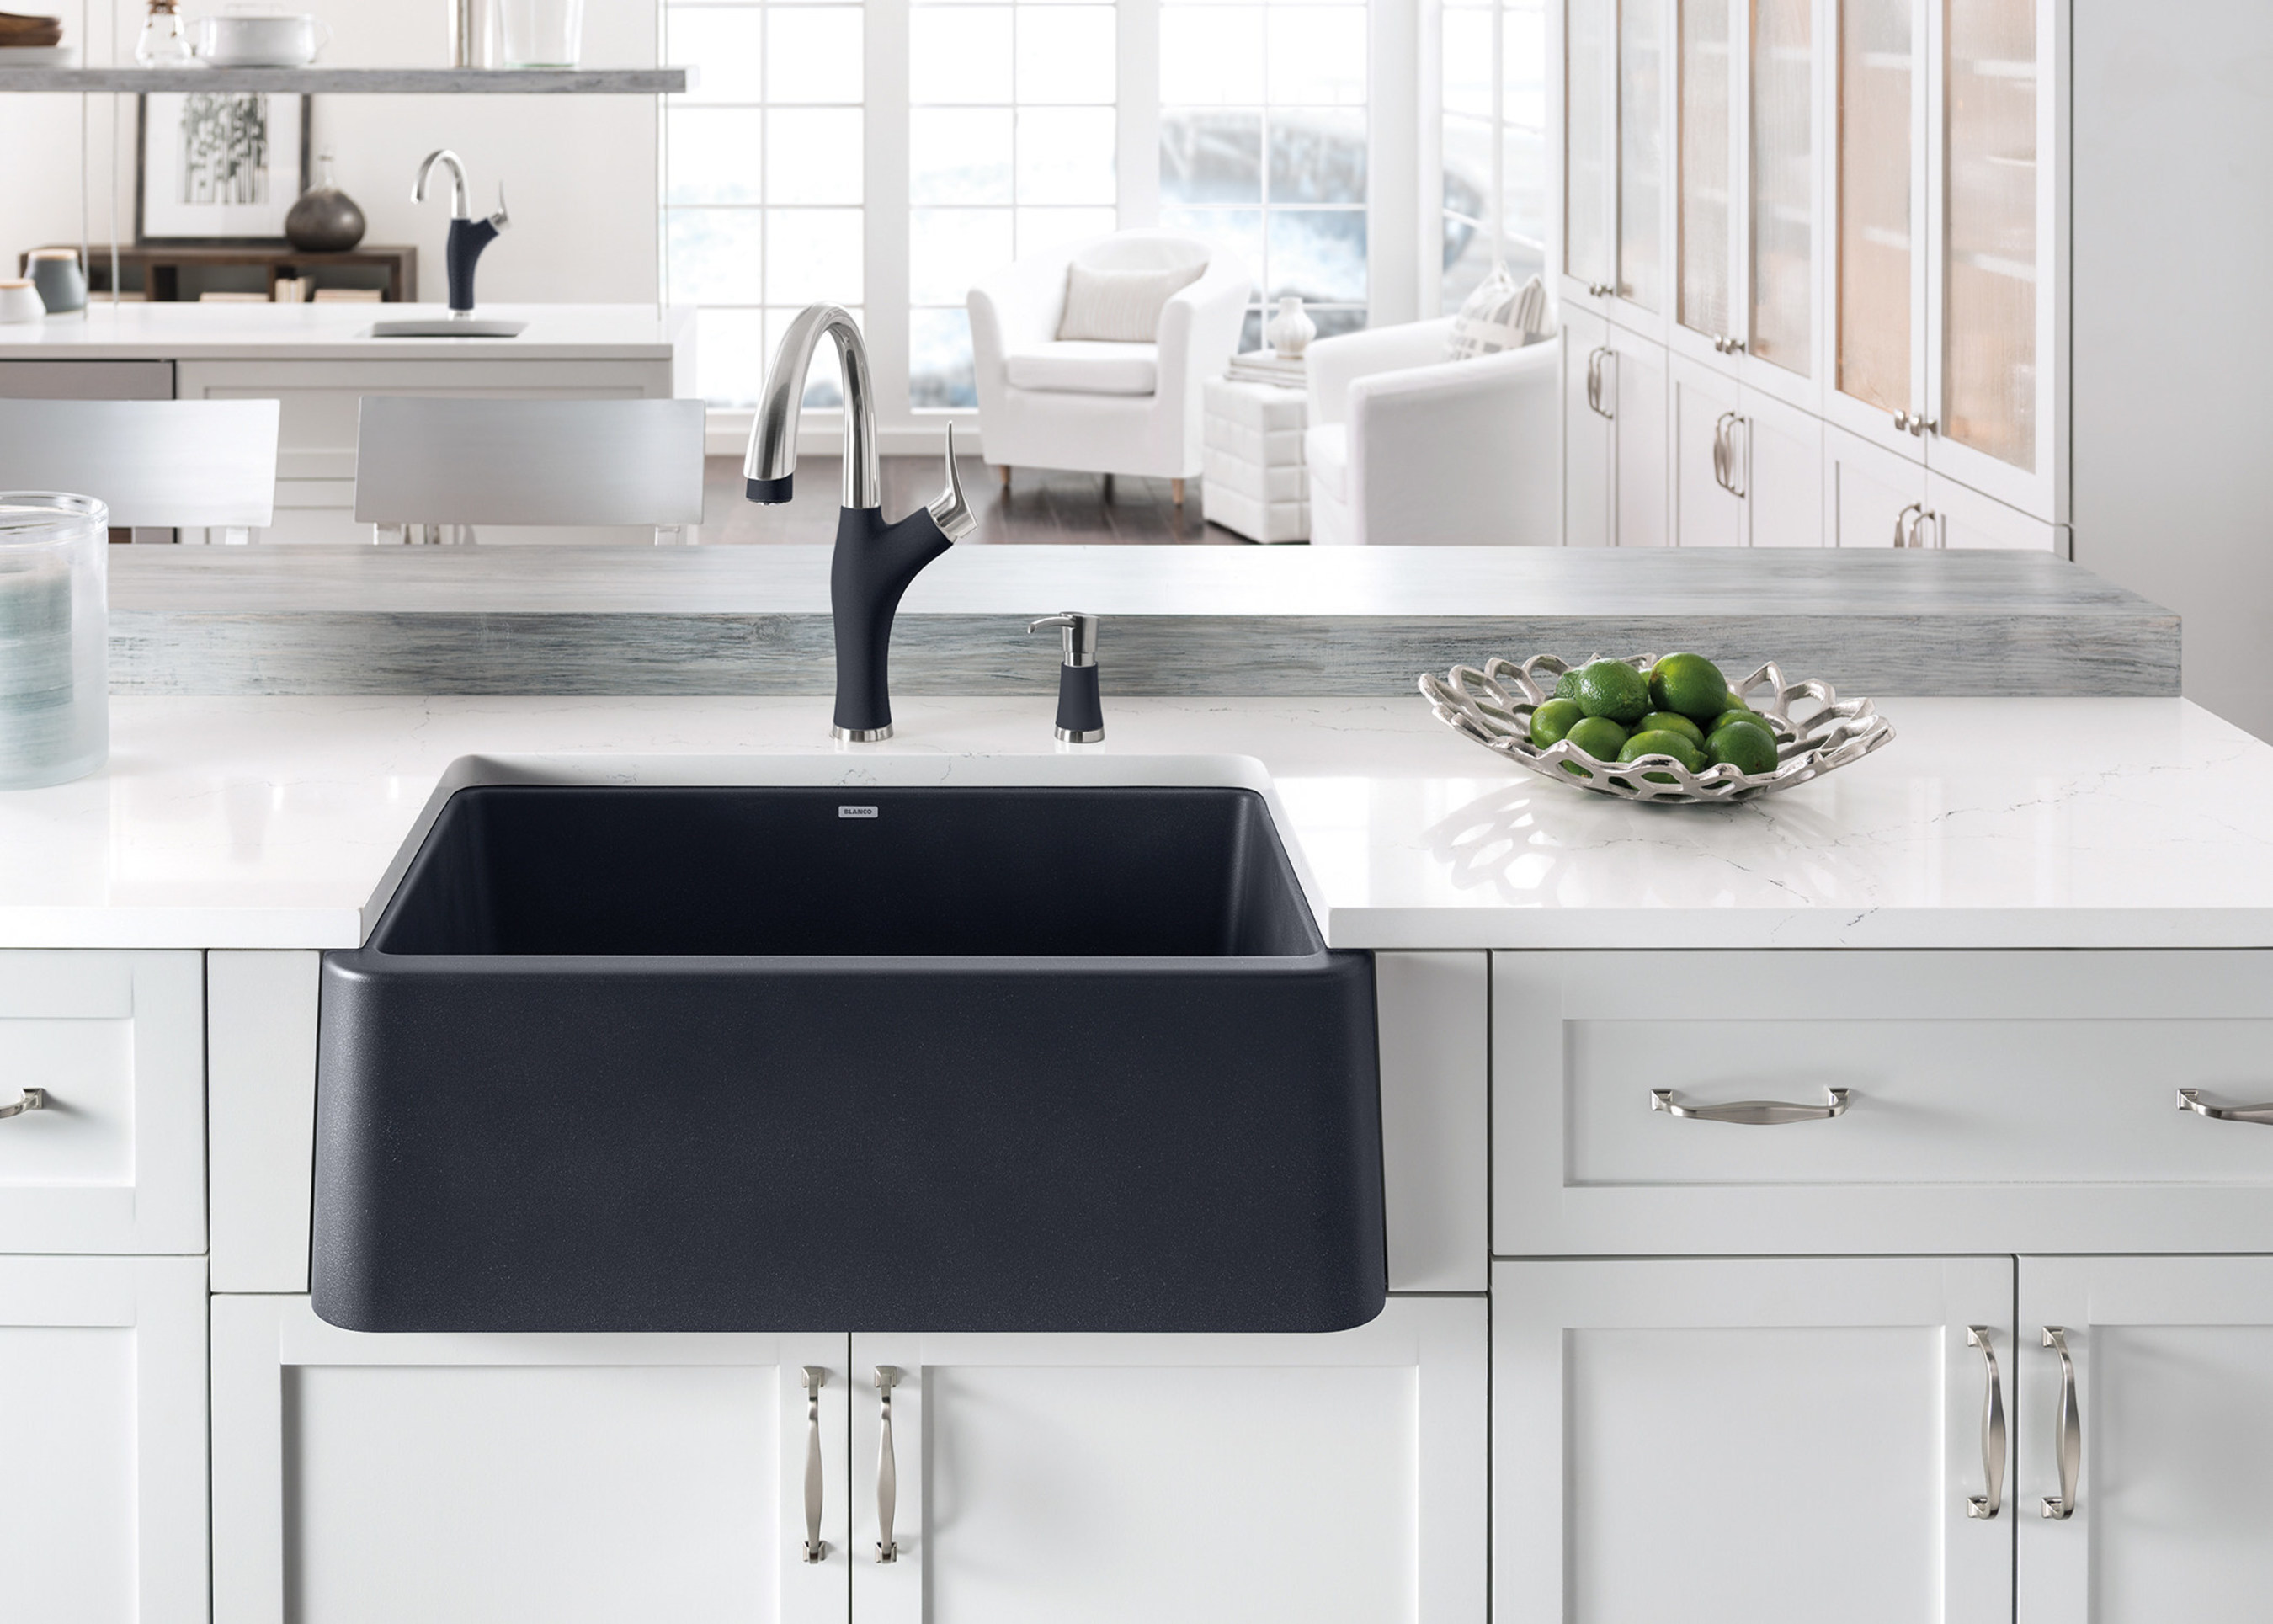 BLANCO Launches IKON™   The First Apron Front Sink Of Its Kind   Crafted  From BLANCOu0027s Patented SILGRANIT® Material, Which Combines On Trend Color  Selection ...